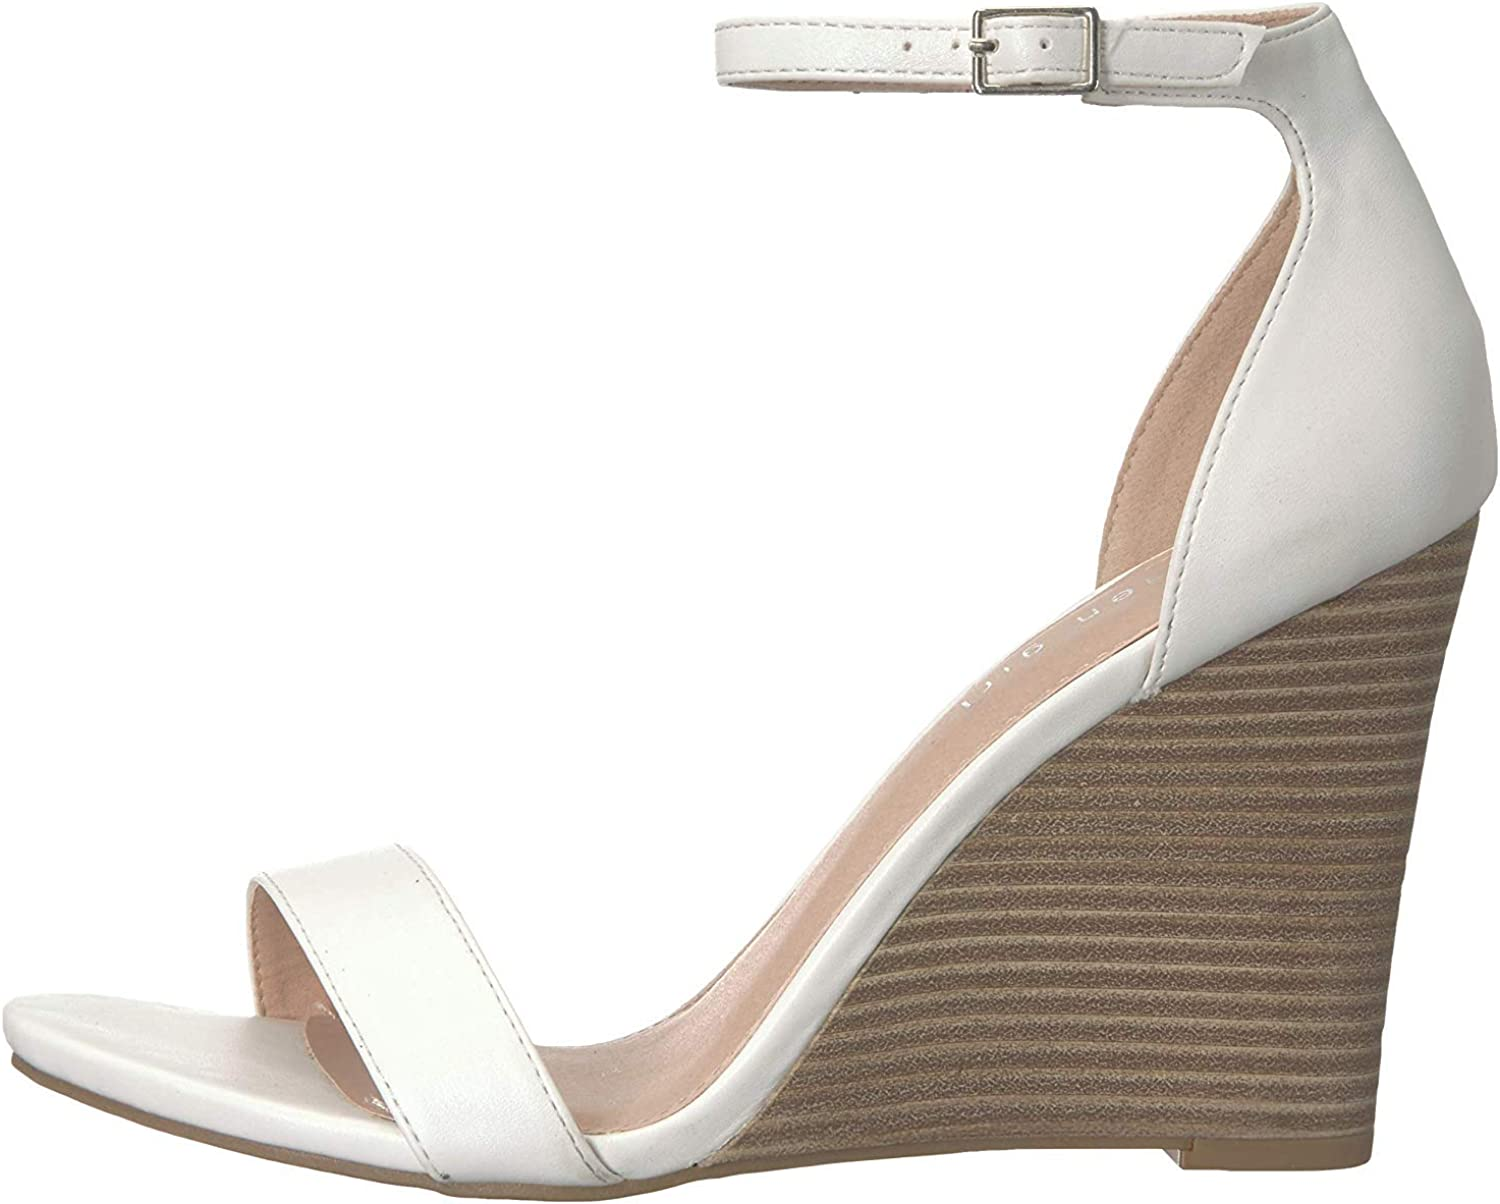 Madden Girl Womens Willow Leather Peep